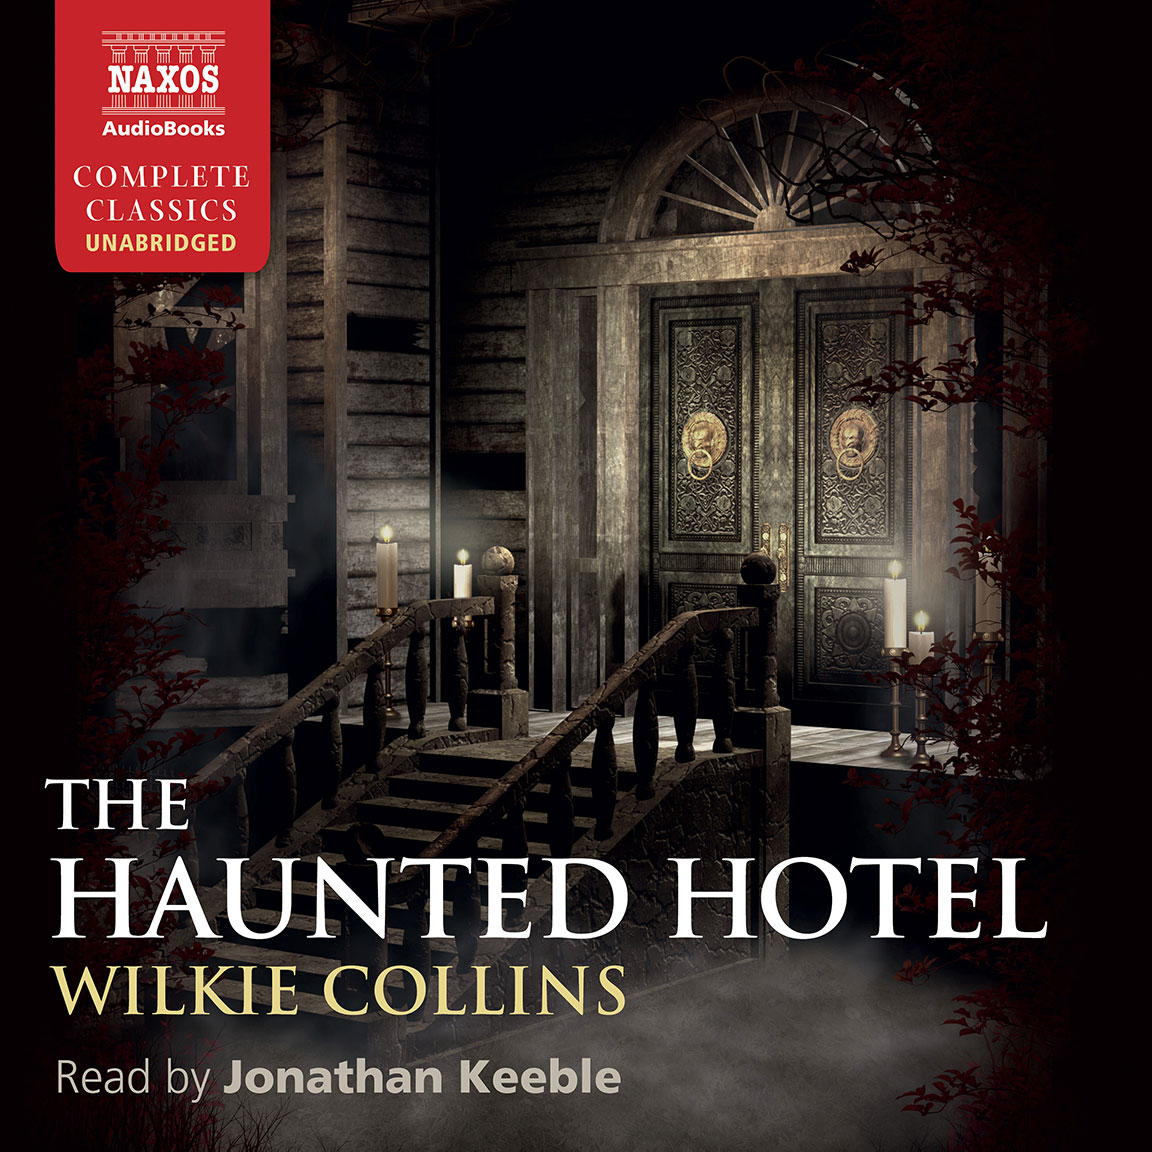 The Haunted Hotel (unabridged)